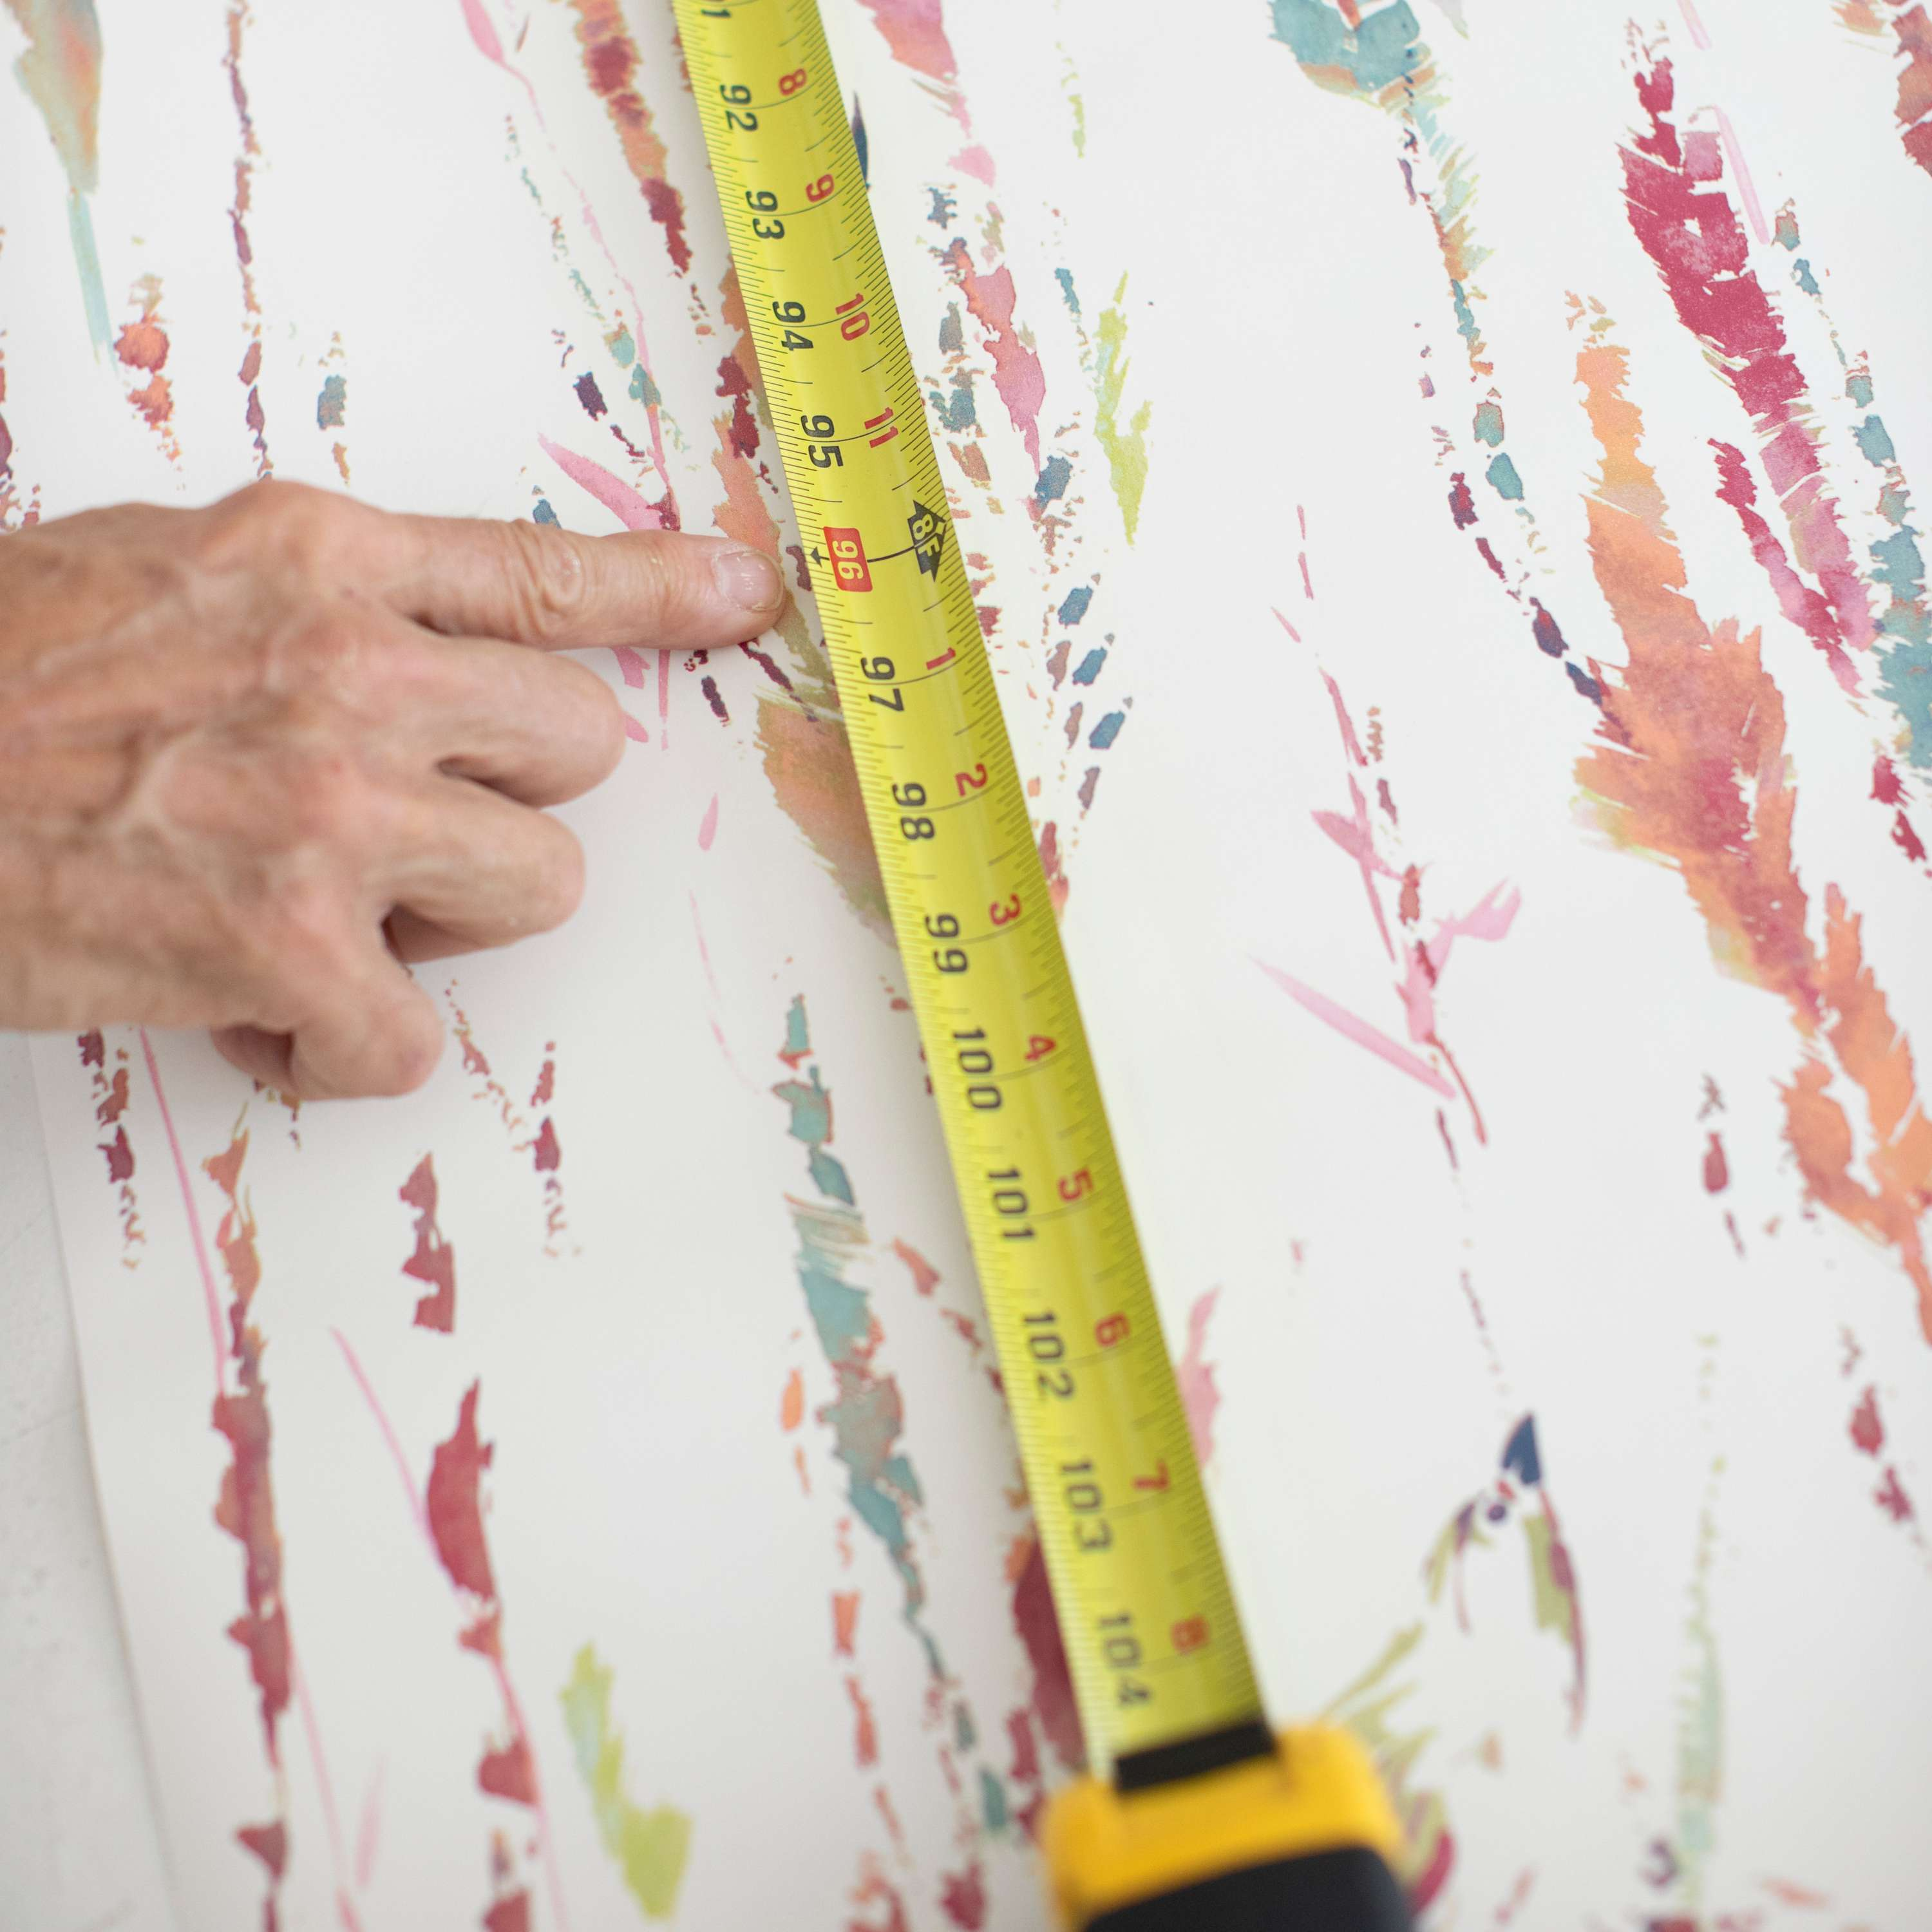 How To Measure And Hang Wallpaper Annie Selke